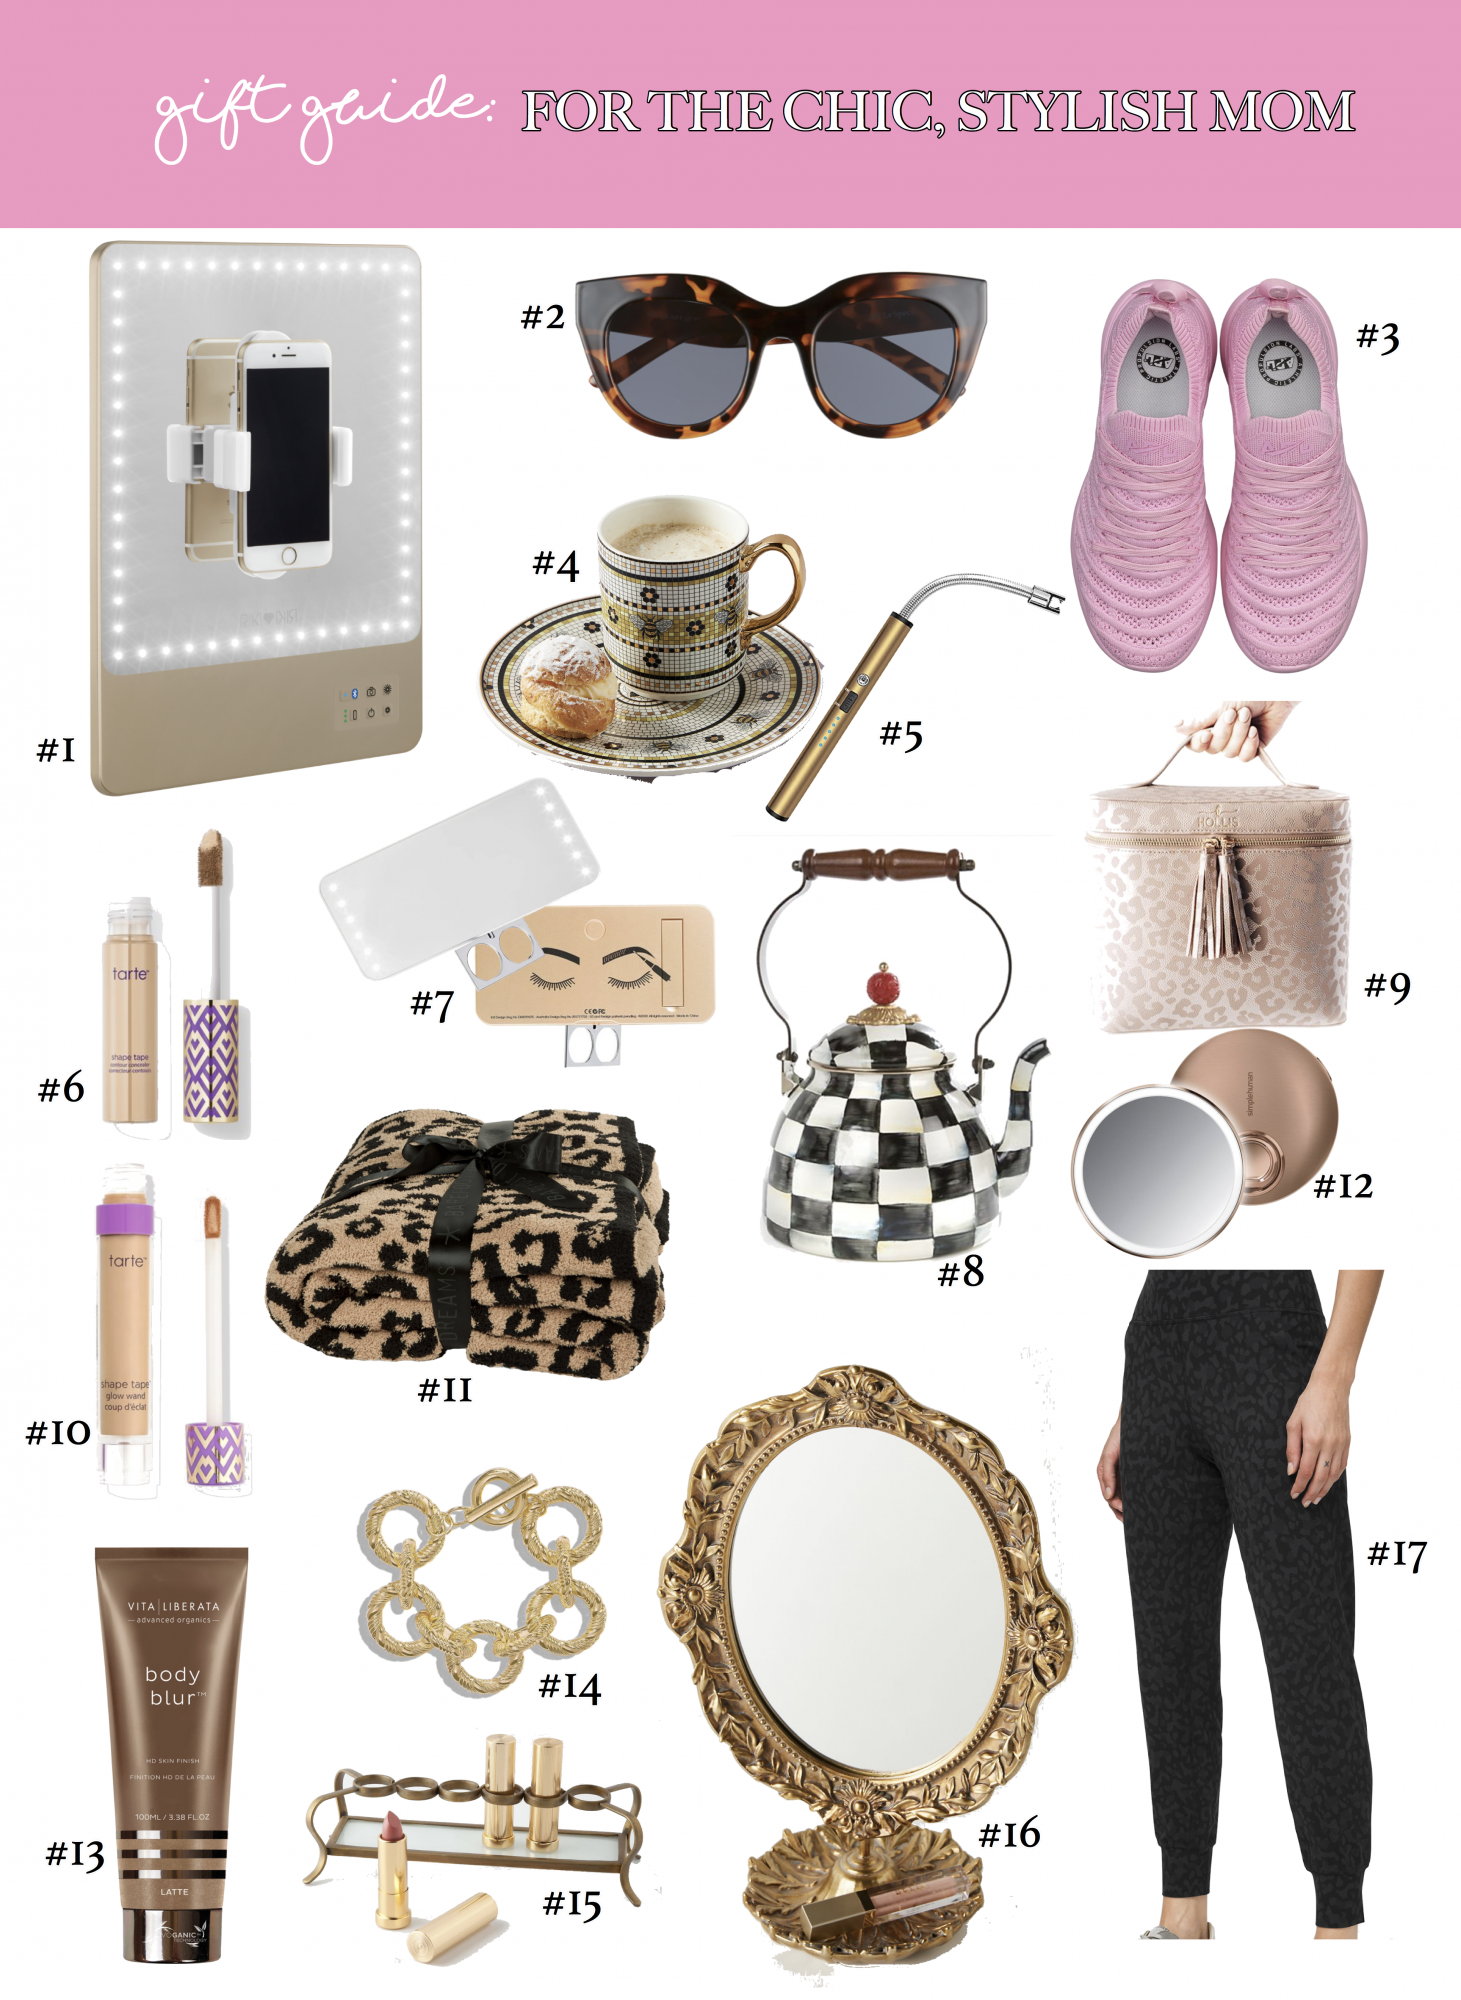 MOTHERS DAY GIFT GUIDE 2020, EMILY GEMMA | Stylish Mother's Day Gift Ideas by popular US life and style blog, The Sweetest Thing: collage image of a RIKI Skinny, Air Heart Sunglasses, APL Tennis Shoes, Garden Tile Mug, Re-Chargable Lighter, Tarte Shape Tape Concealer, RIKI Cutie, MacKenzie Childs Tea Kettle, Hollis Leopard Makeup Bag, Tarte Shape Tape Glow Wand, Barefoot Dreams Throw Blanket, Sensor Makeup Mirror Compact, Vita Liberata Body Blur, Parisian Links Bracelet, Lipstick Holder, Parisian Mirror Vanity, and Lululemon Leopard Joggers.